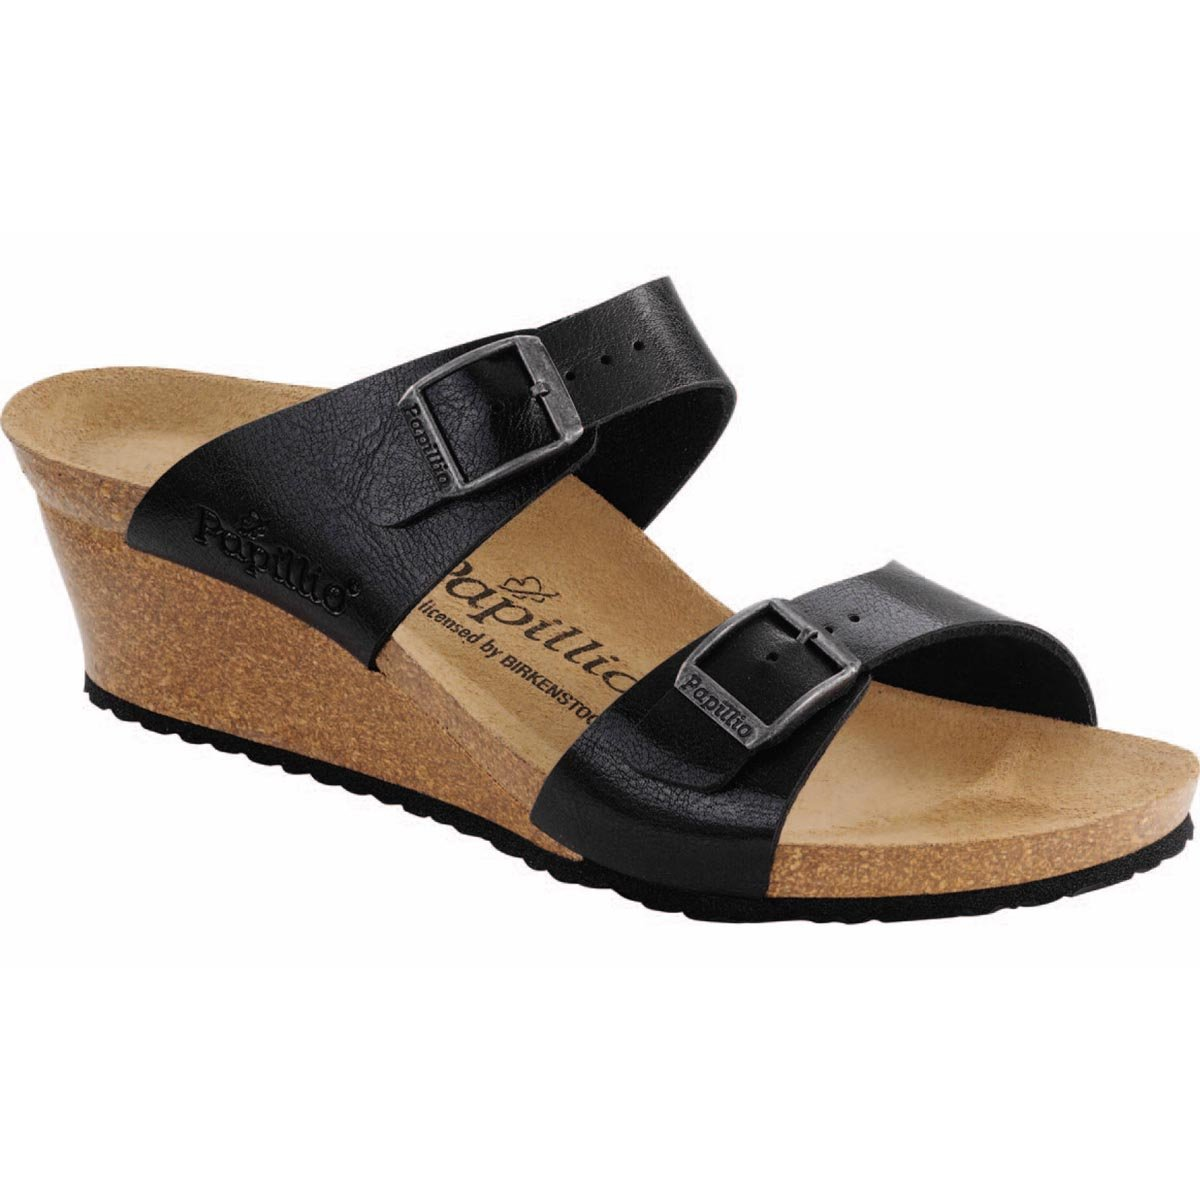 Birkenstock Dorothy Narrow Sandal - Women's Graceful Licorice Birko-Flor, 41.0